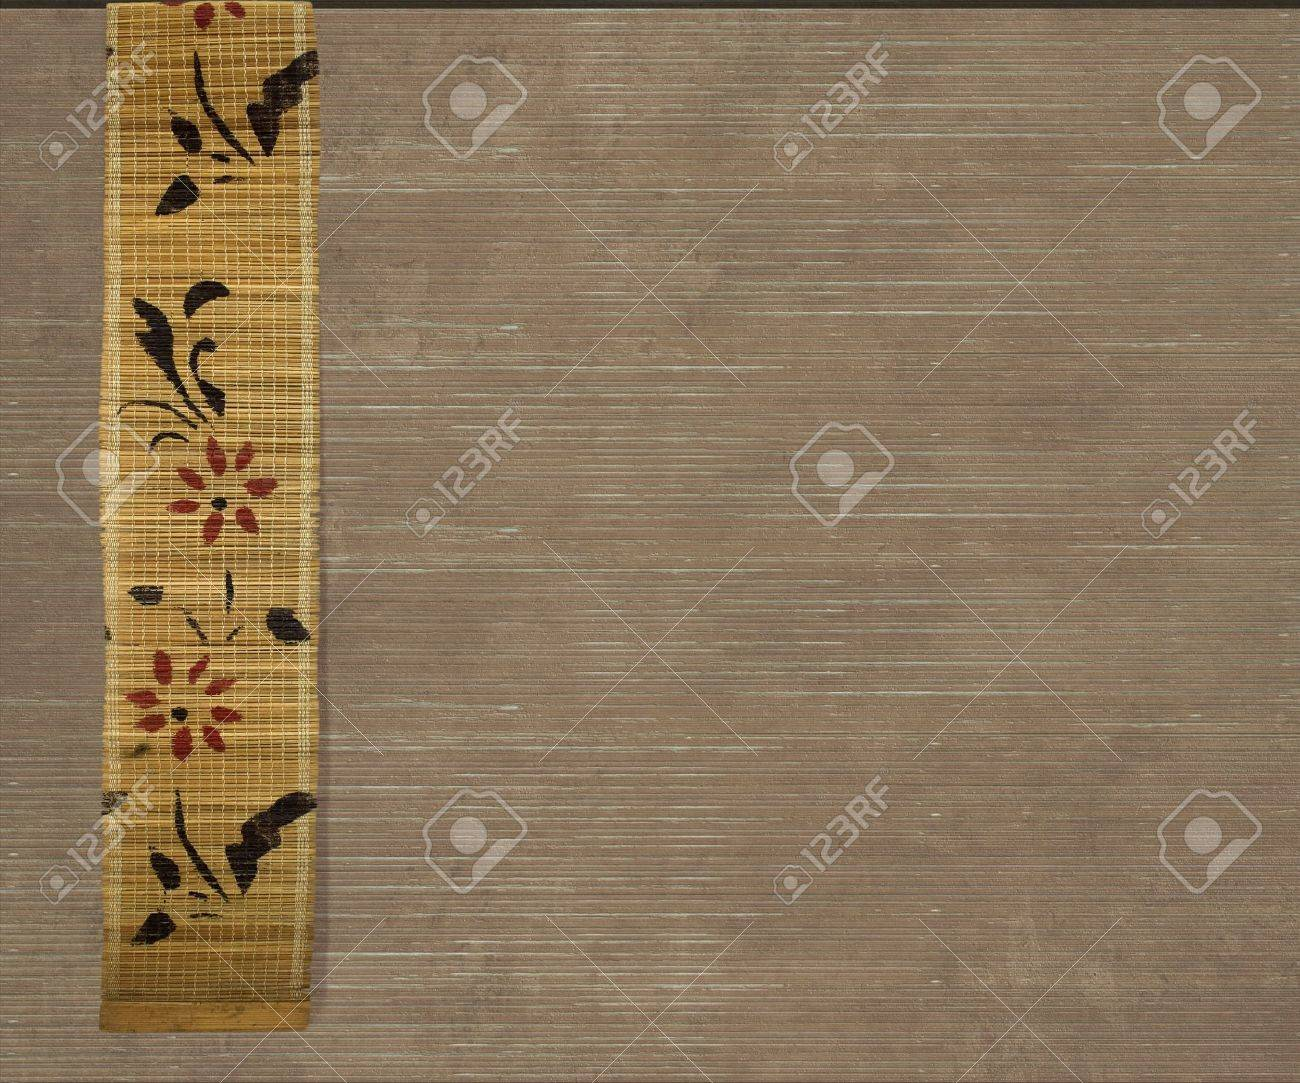 Flower bamboo banner on light brown ribbed wood background Stock Photo - 8138686